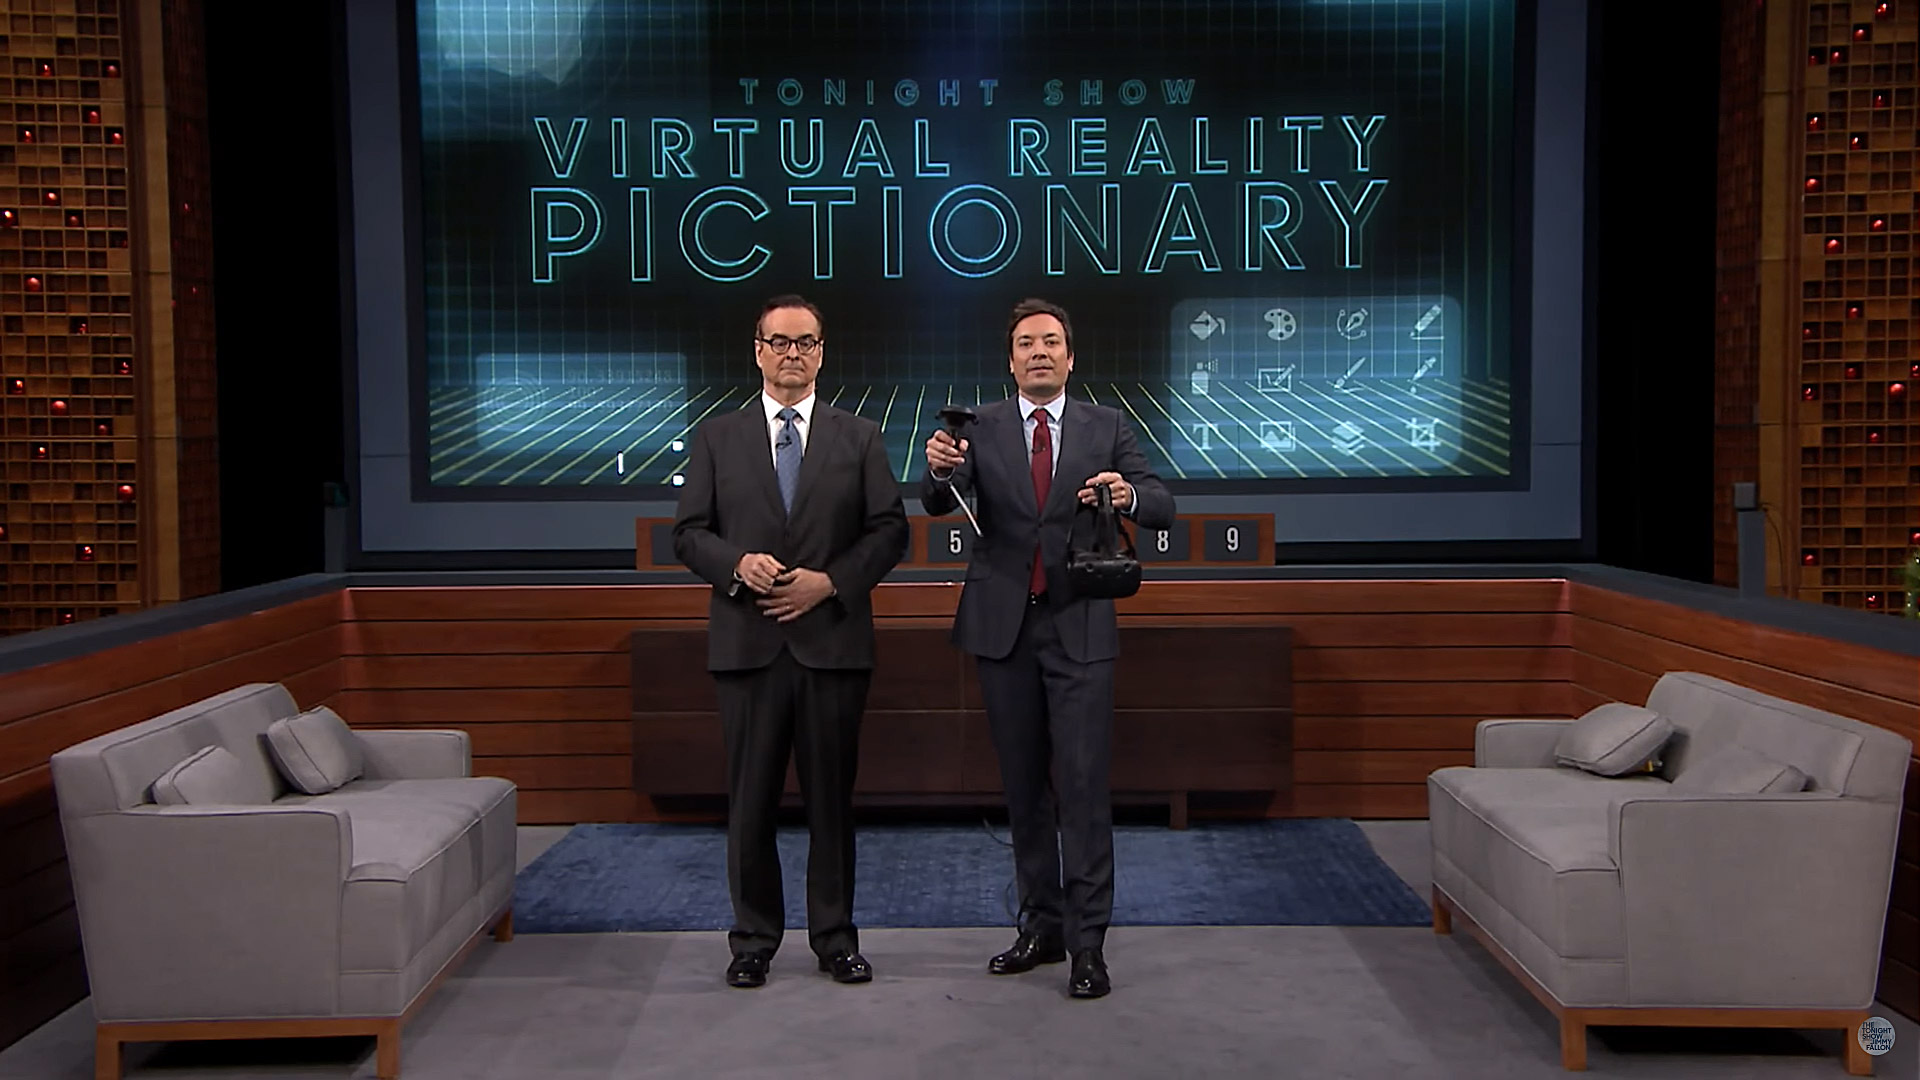 Jimmy Fallon's Tonight Show Debuts Virtual Reality Pictionary Segment with 'Tilt Brush'